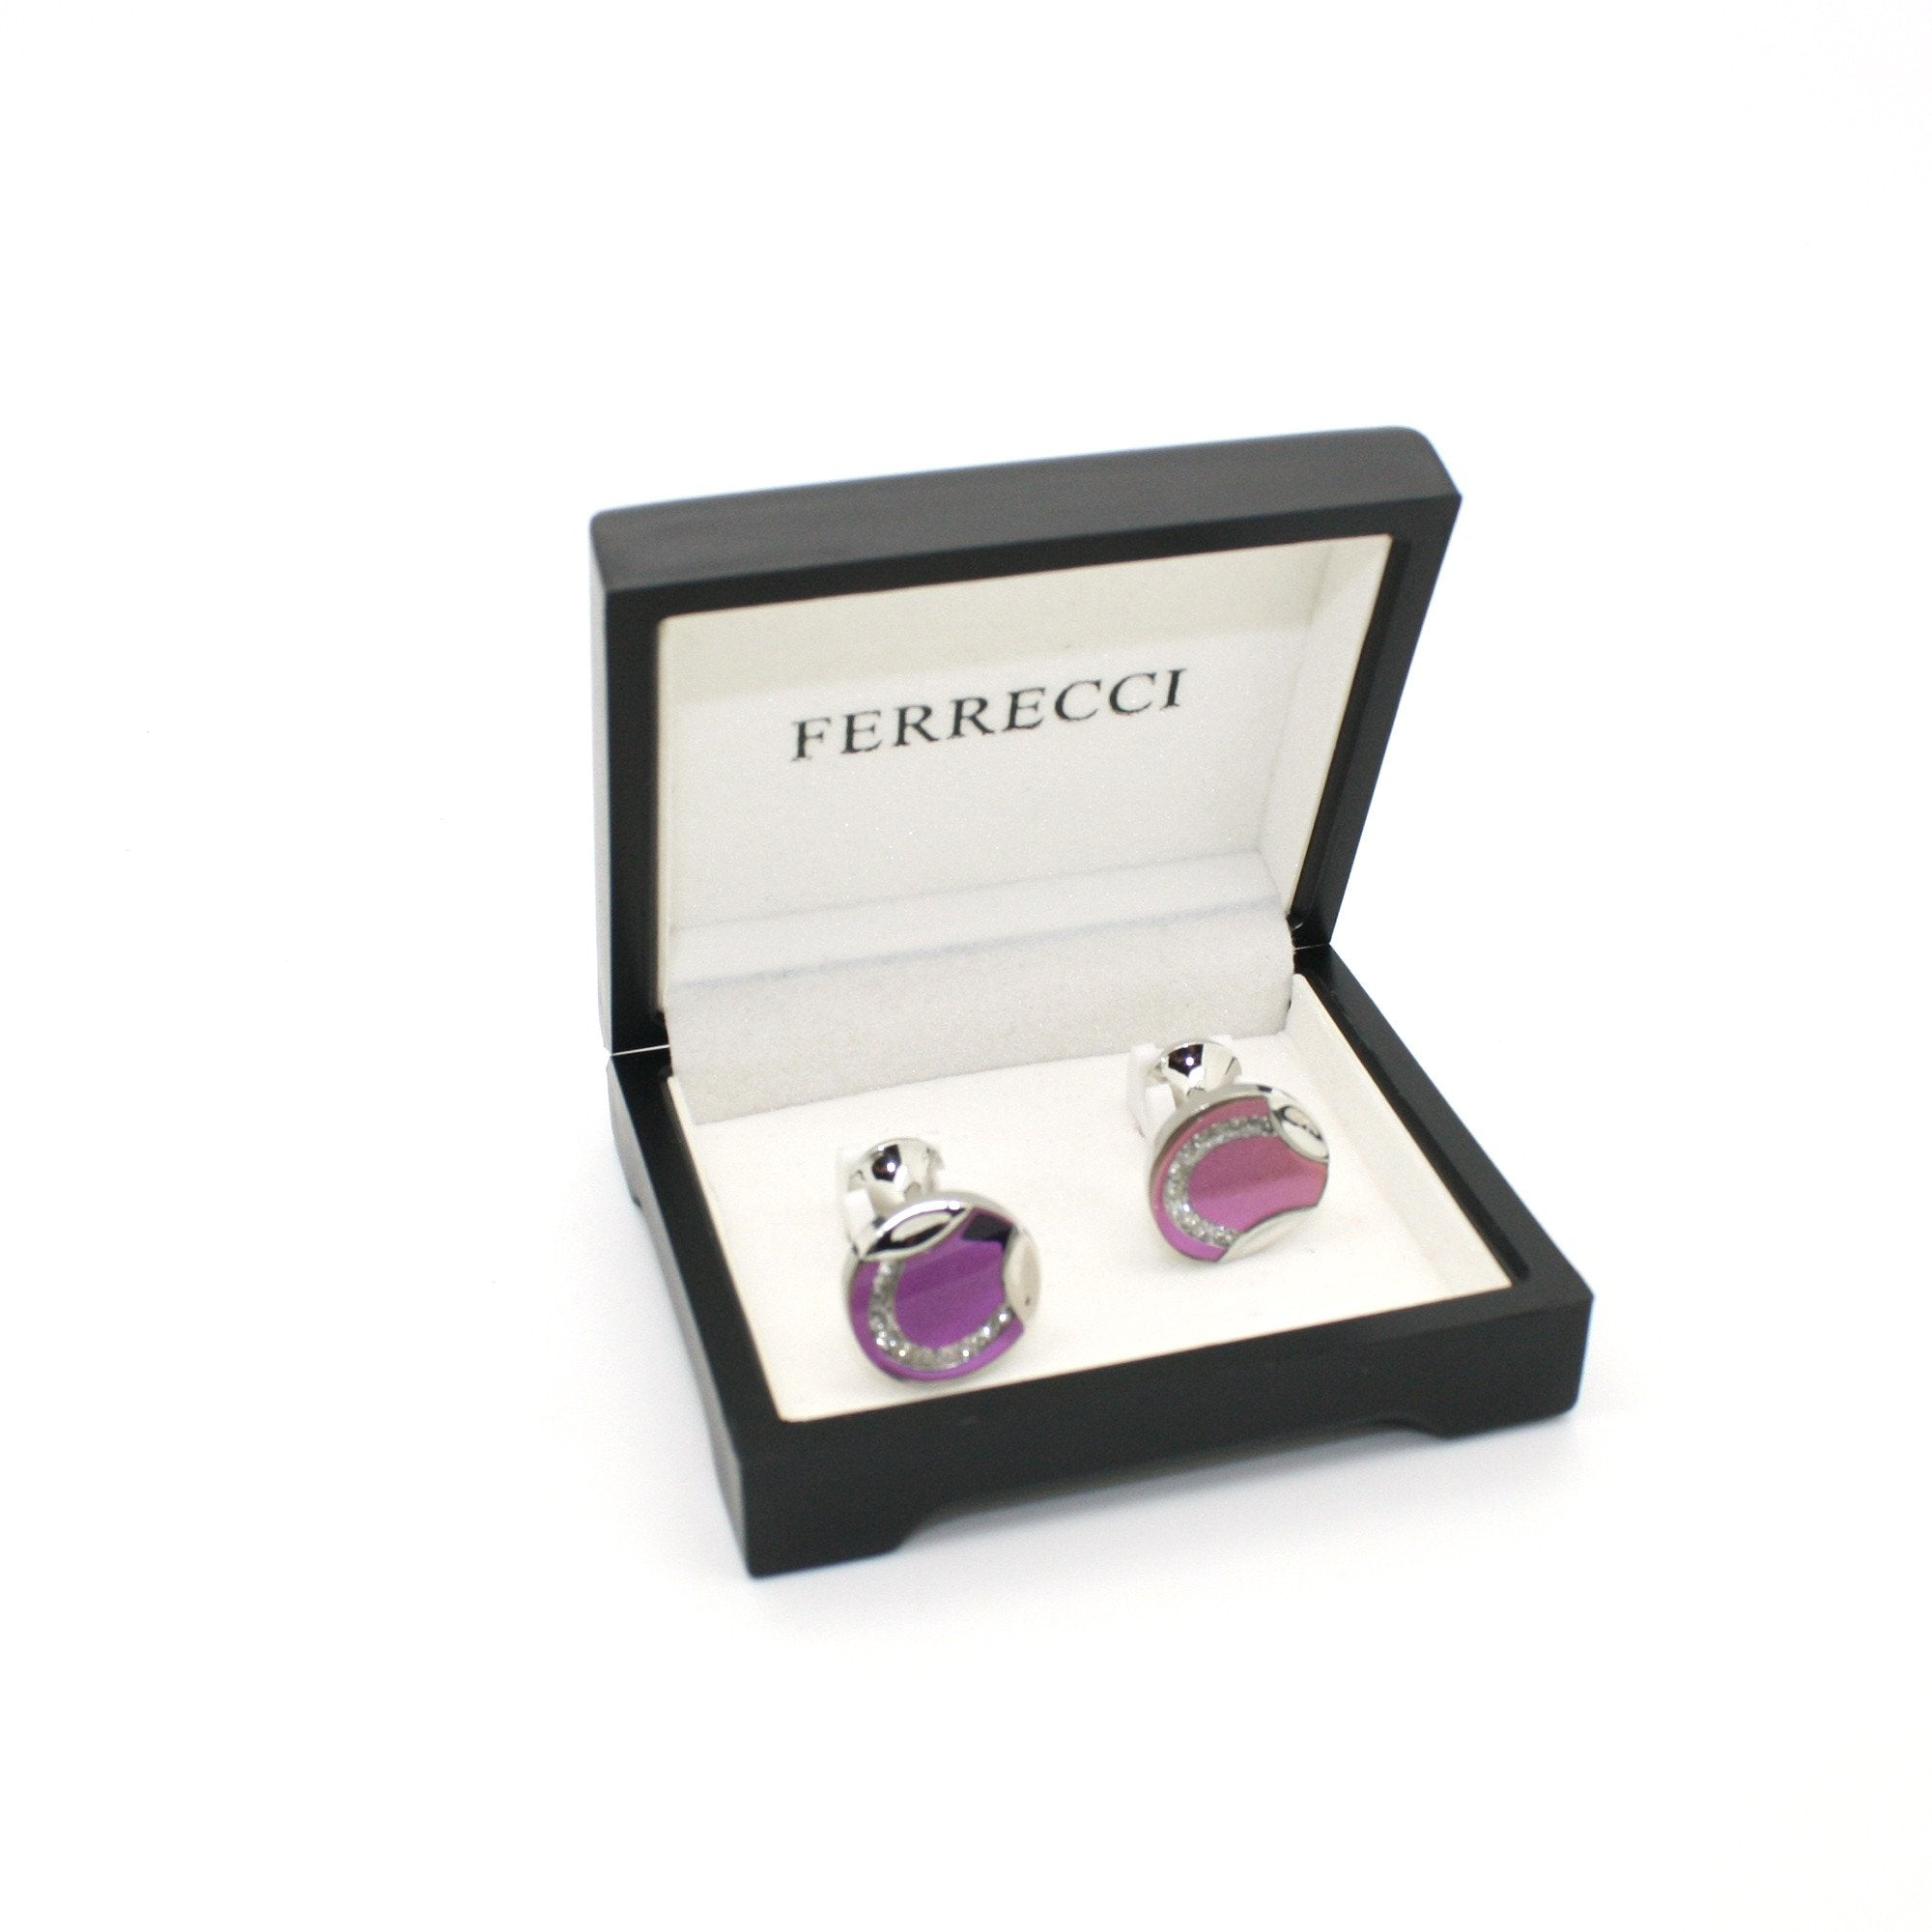 Silvertone Purple Glass Cuff Links With Jewelry Box - Giorgio's Menswear